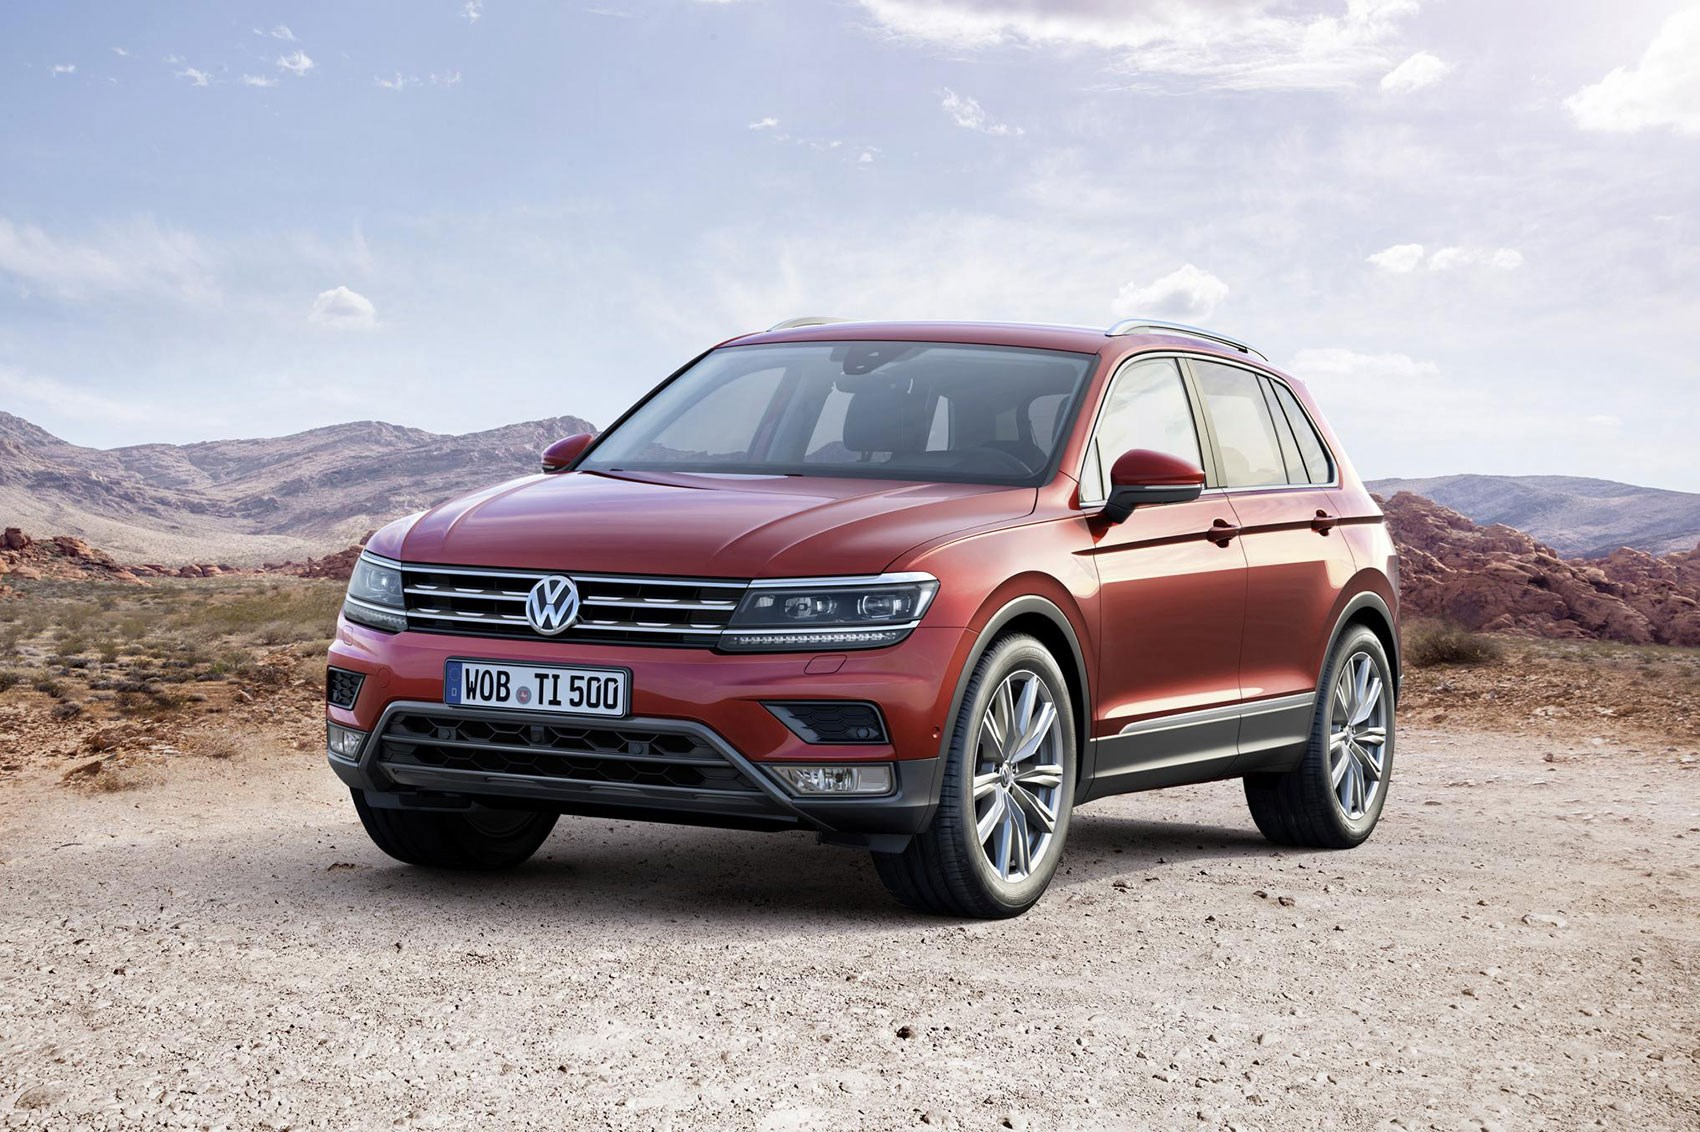 new vw tiguan crossover bows in with solar panelled gte hybrid by car magazine. Black Bedroom Furniture Sets. Home Design Ideas